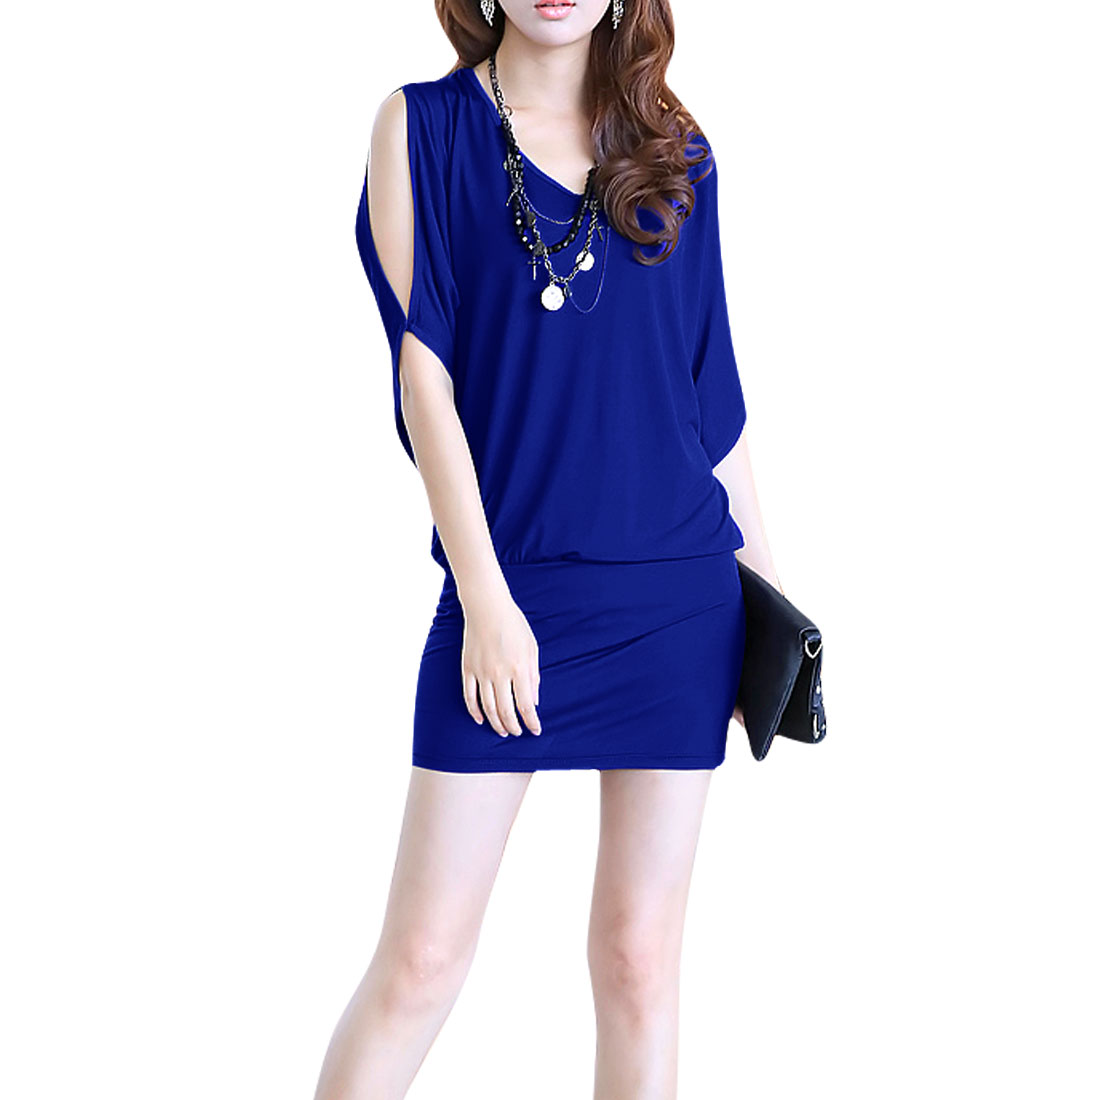 Ladies Pullover Half Sleeve Stretchy Dress Royal Blue M